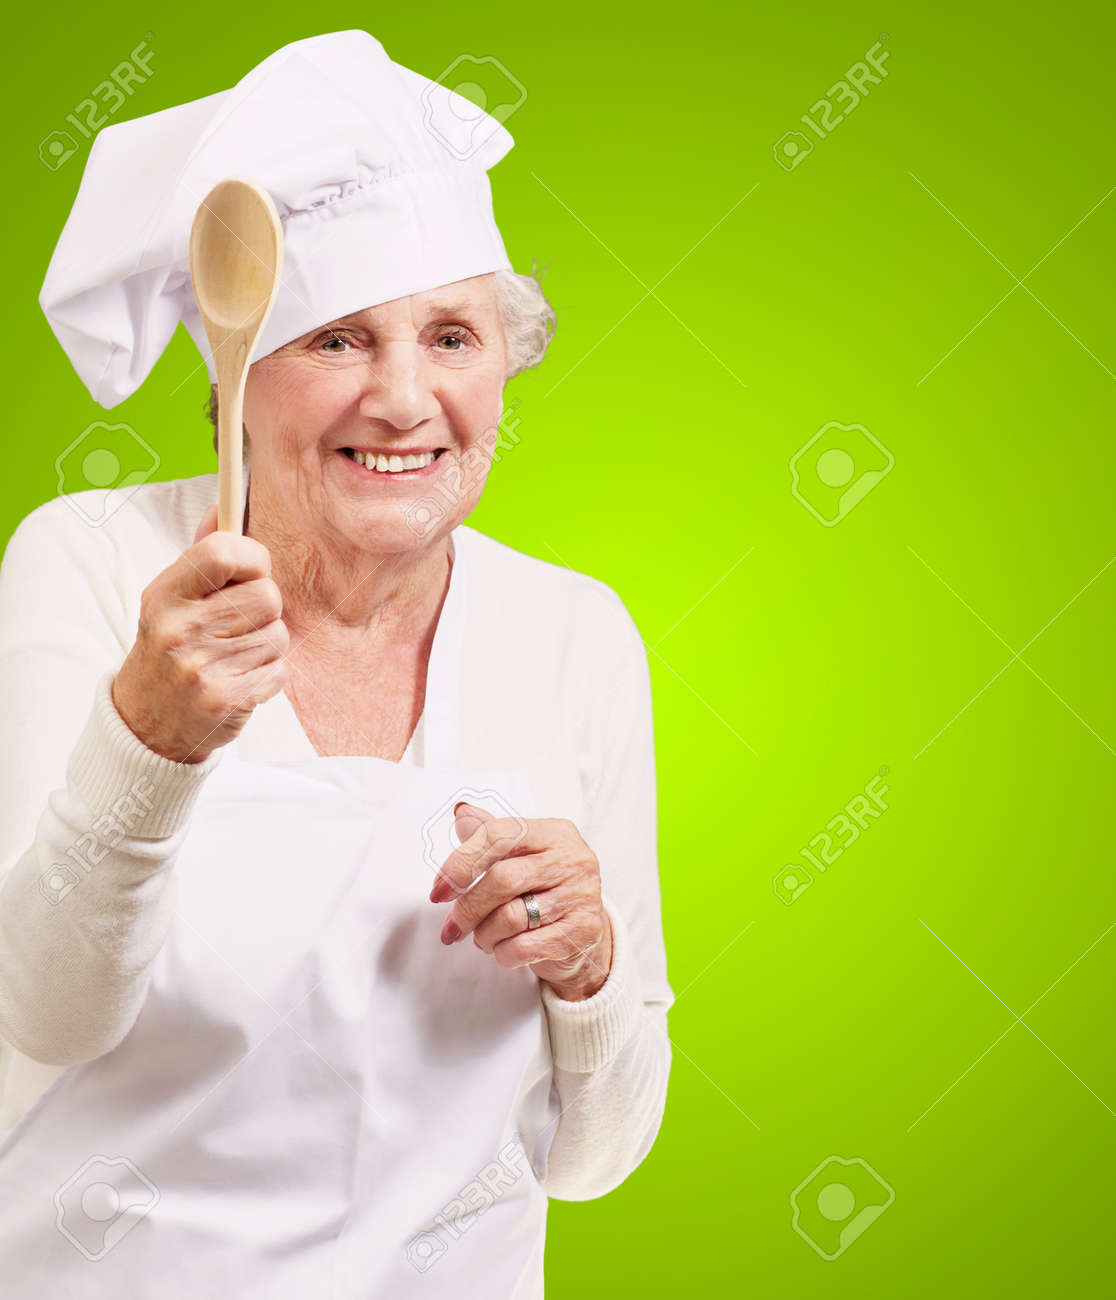 portrait of senior cook woman holding a wooden spoon over green background Stock Photo - 13280082